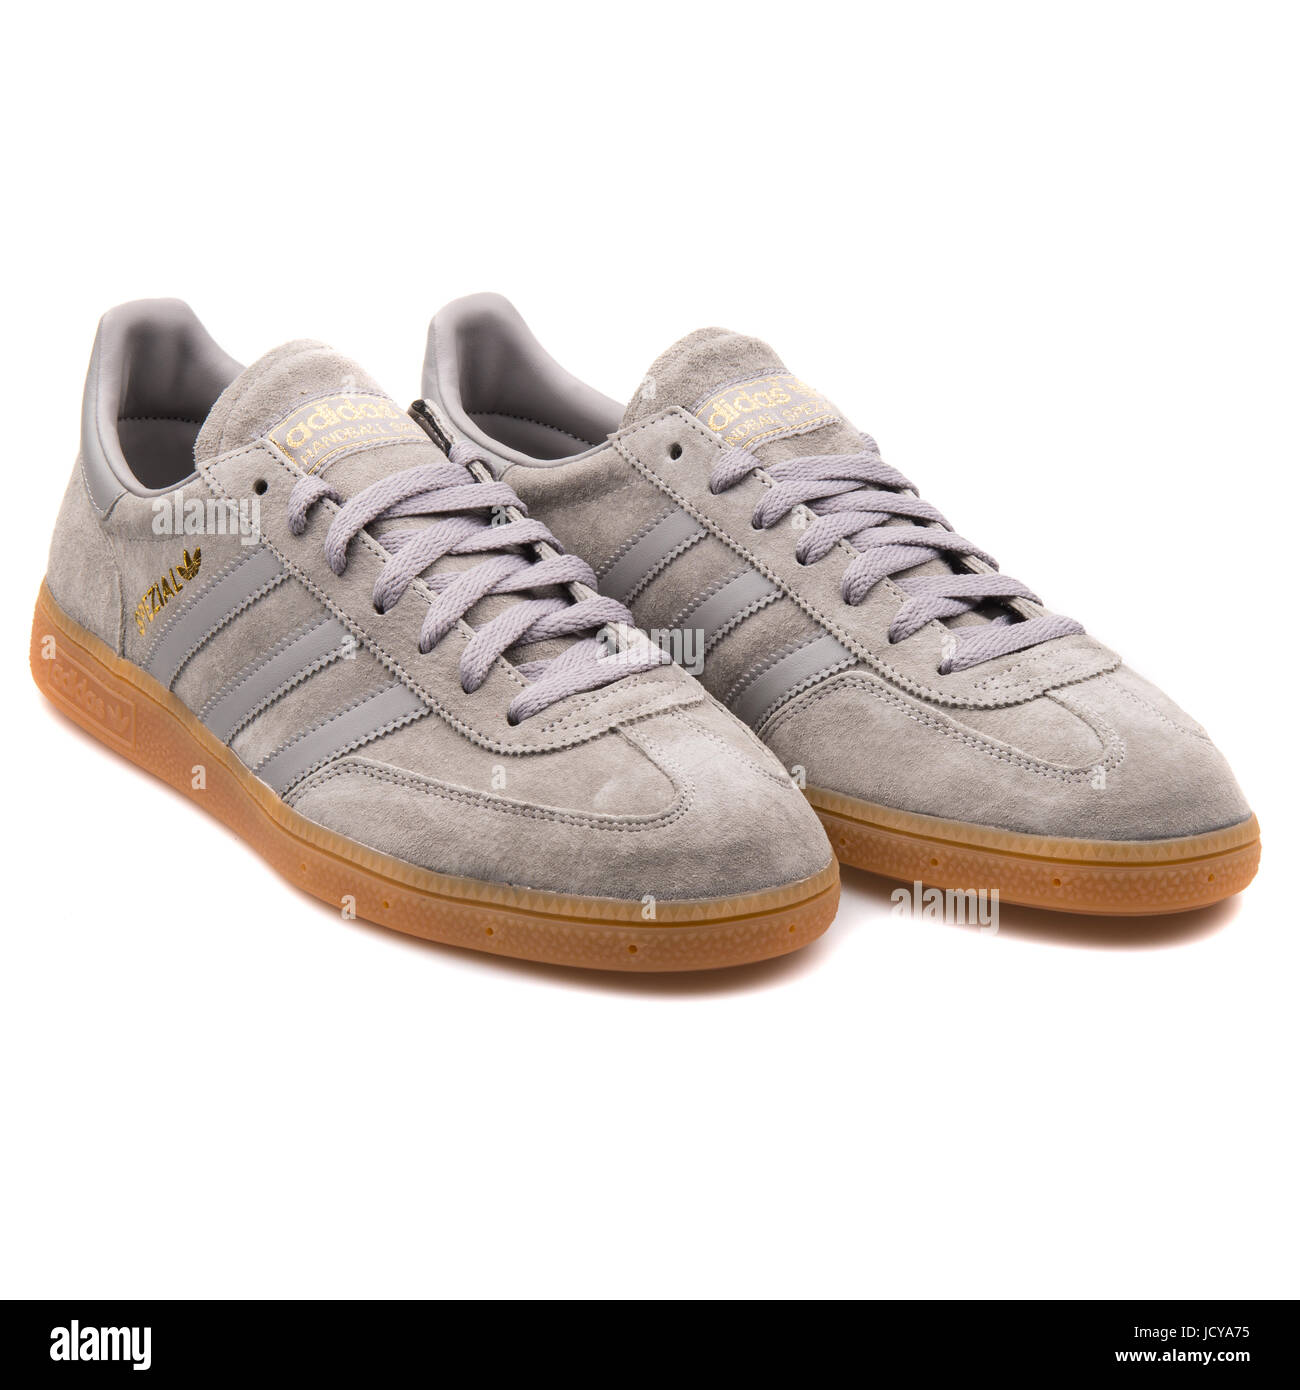 Adidas Trainers Sneakers Immagini & Adidas Trainers Sneakers